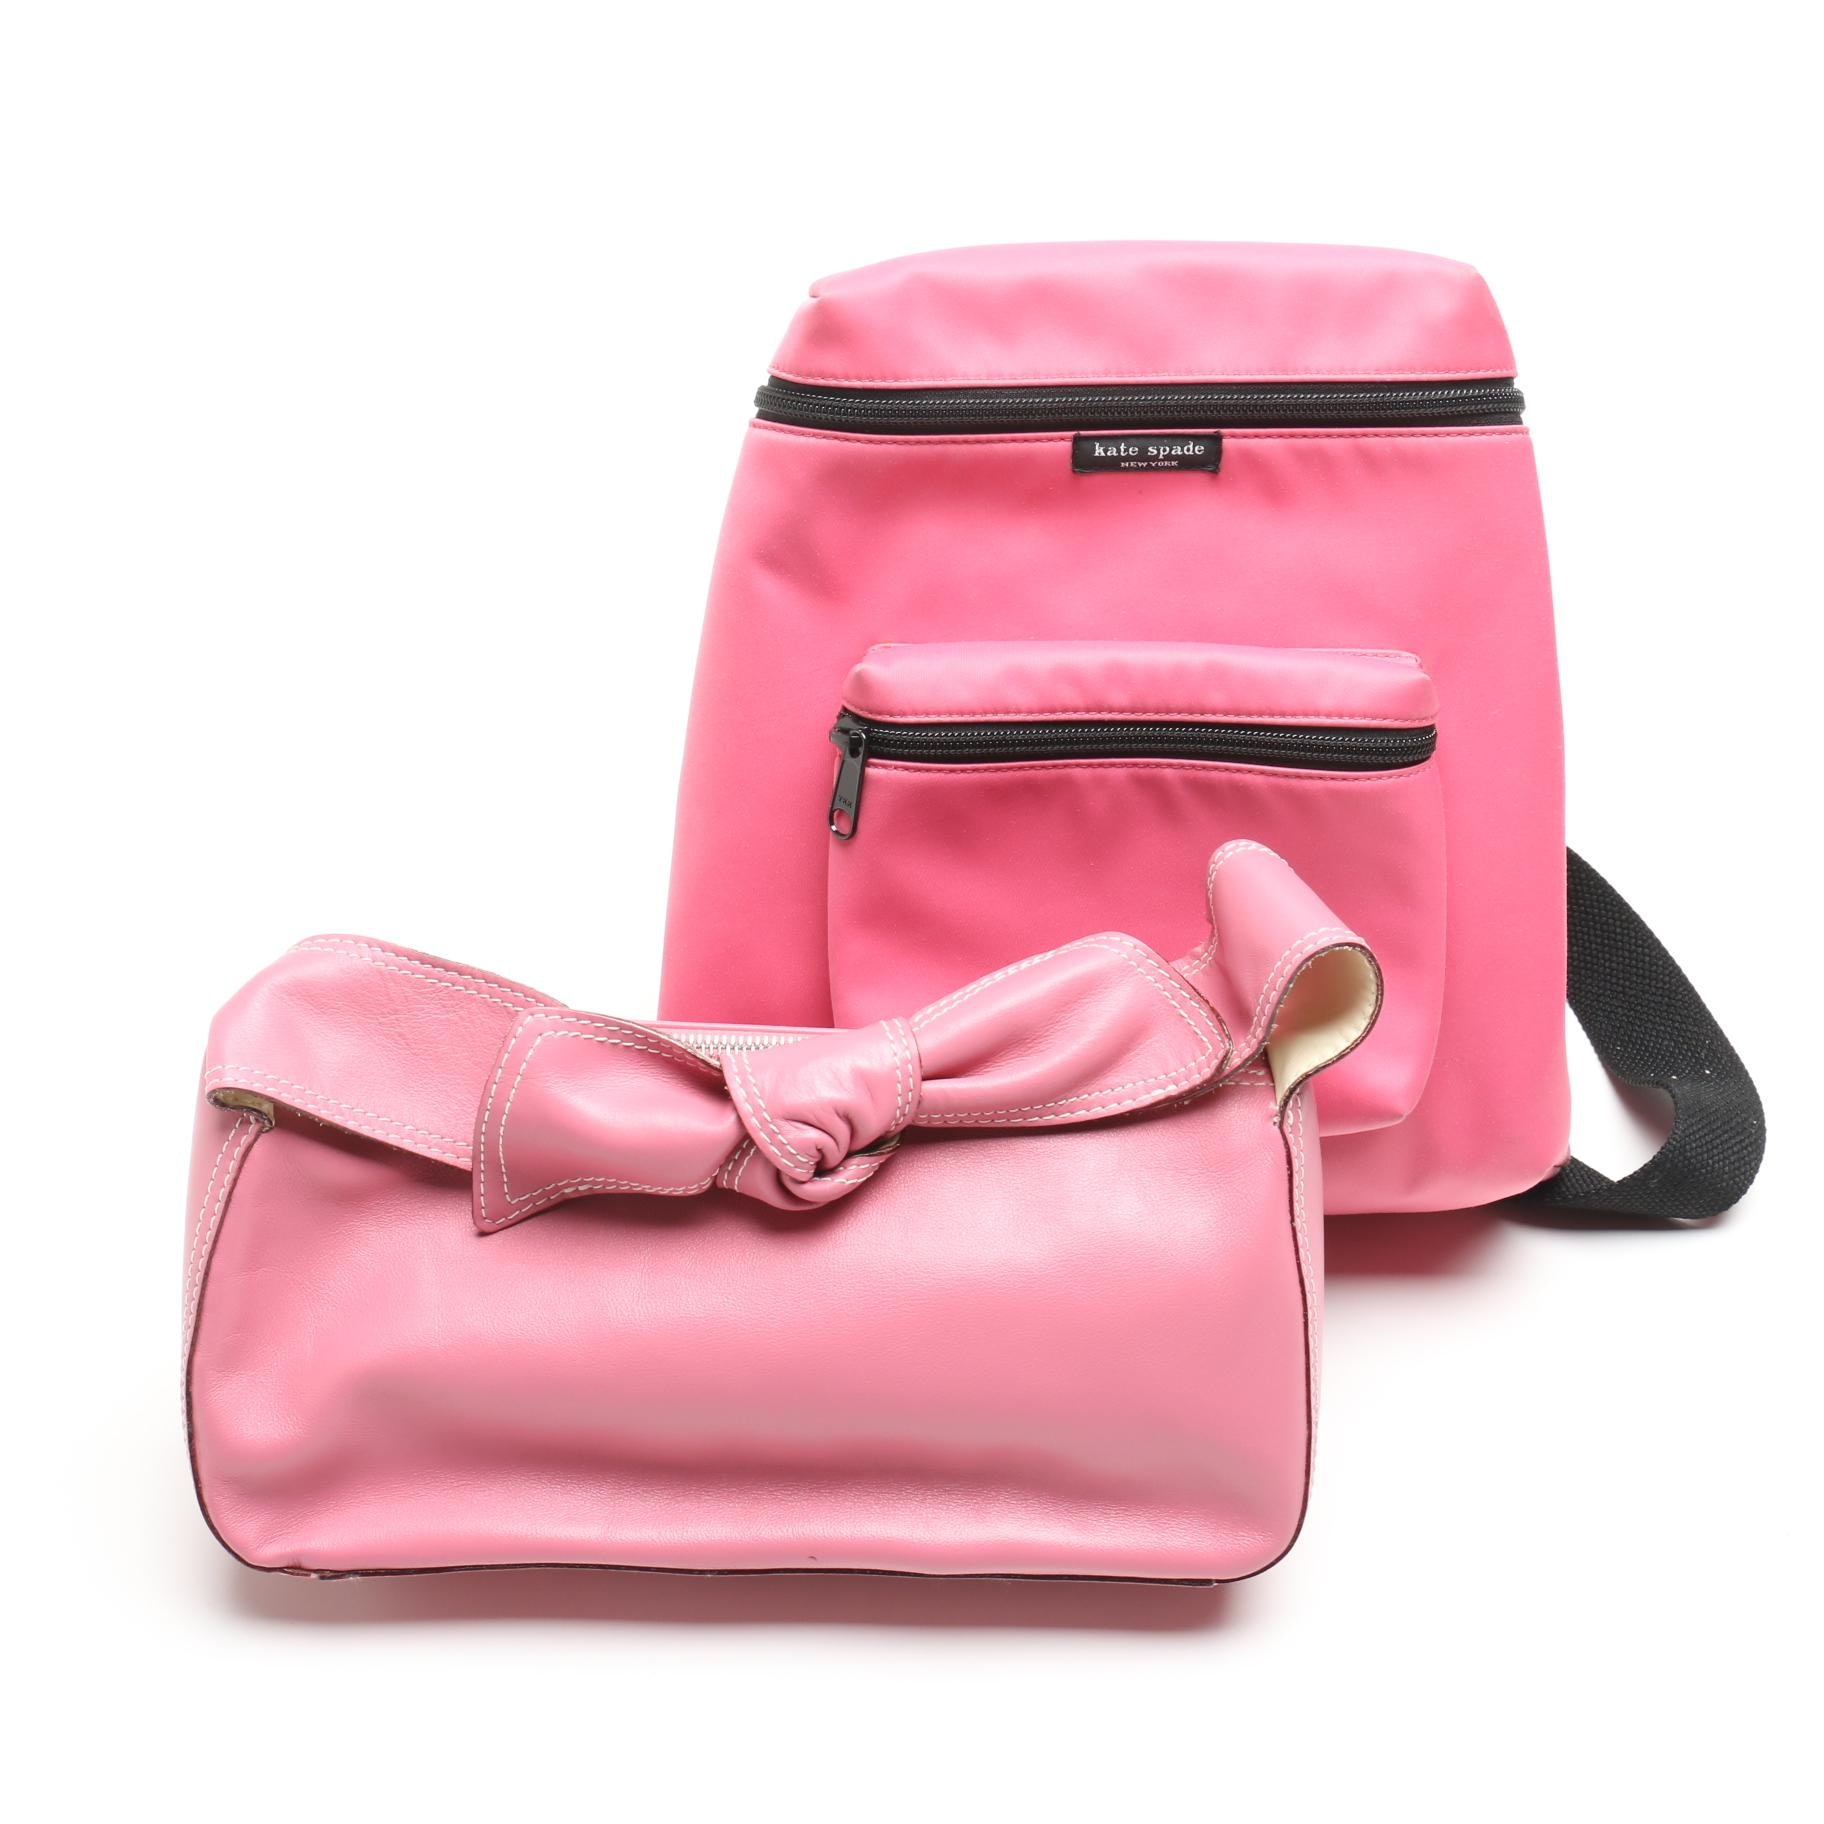 Kate Spade New York Pink Mini Backpack and Leather Bow Baguette